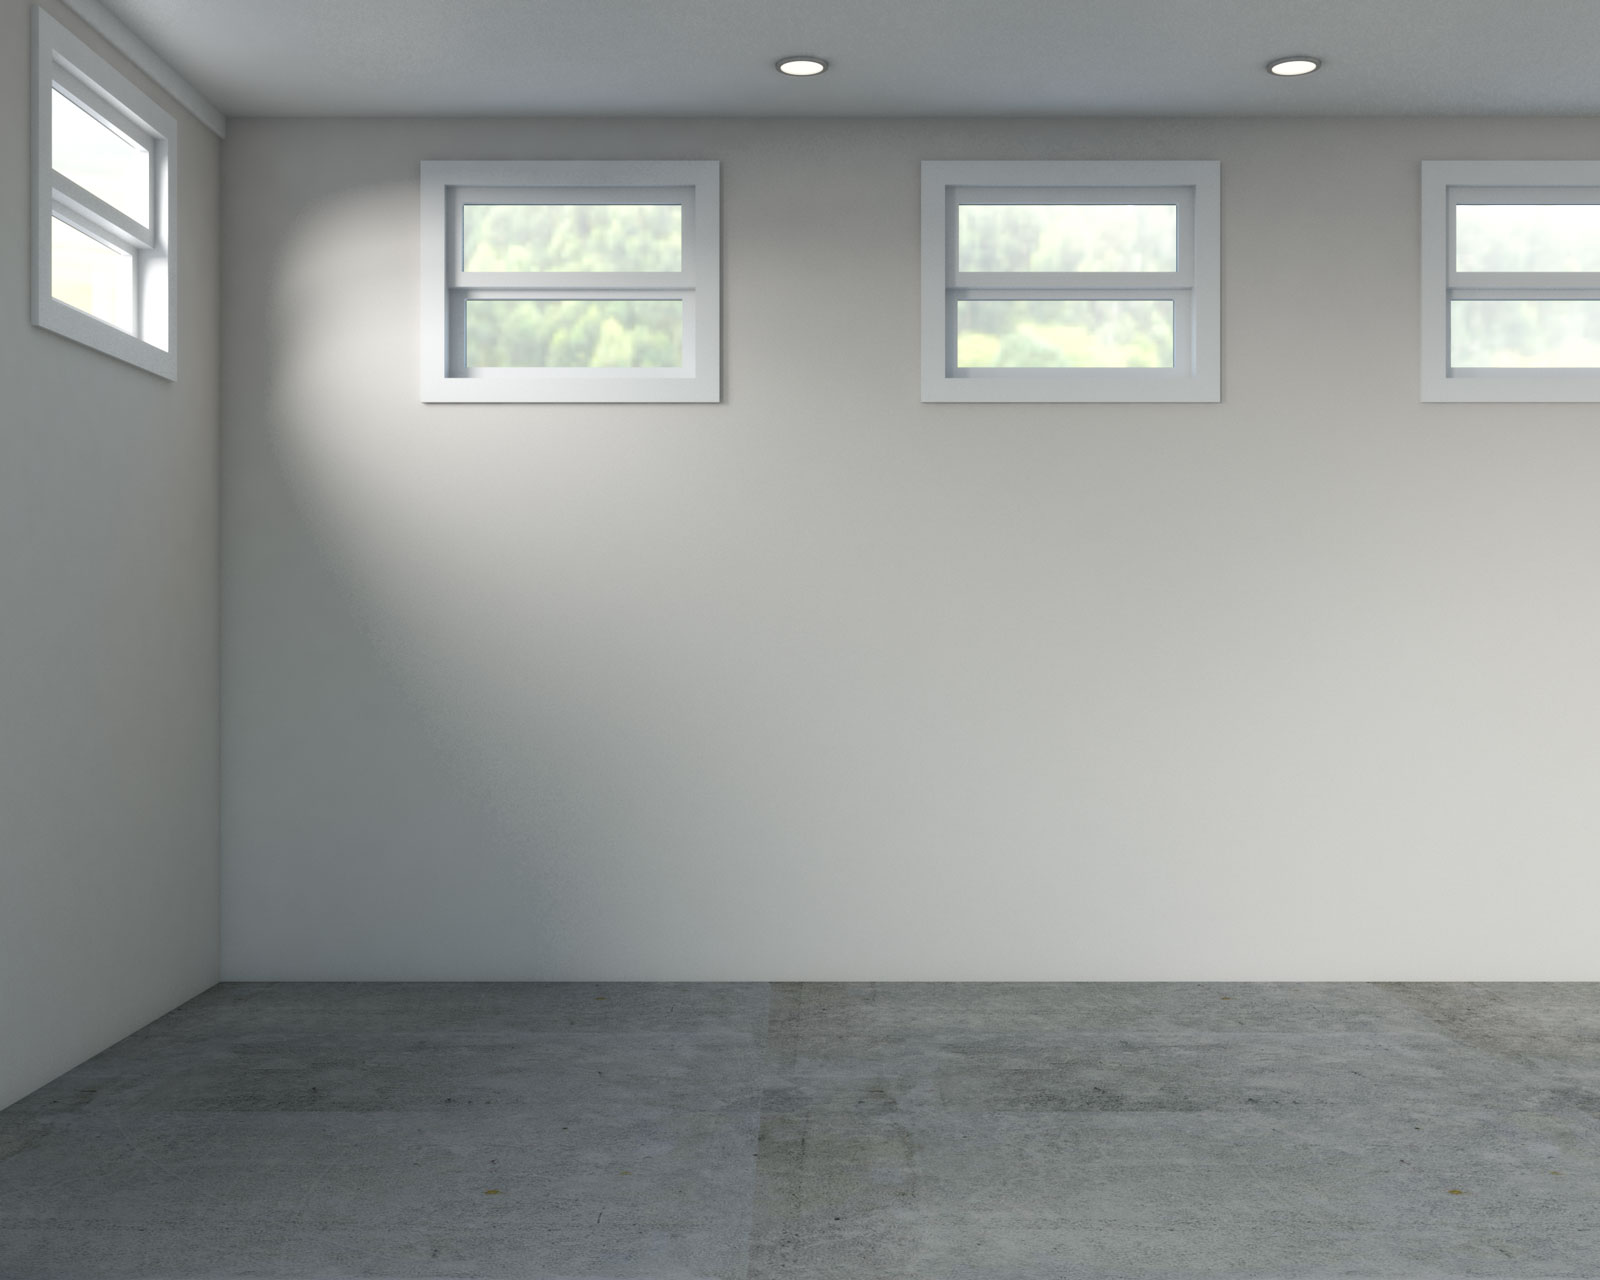 Basement with light brown walls and concrete floor